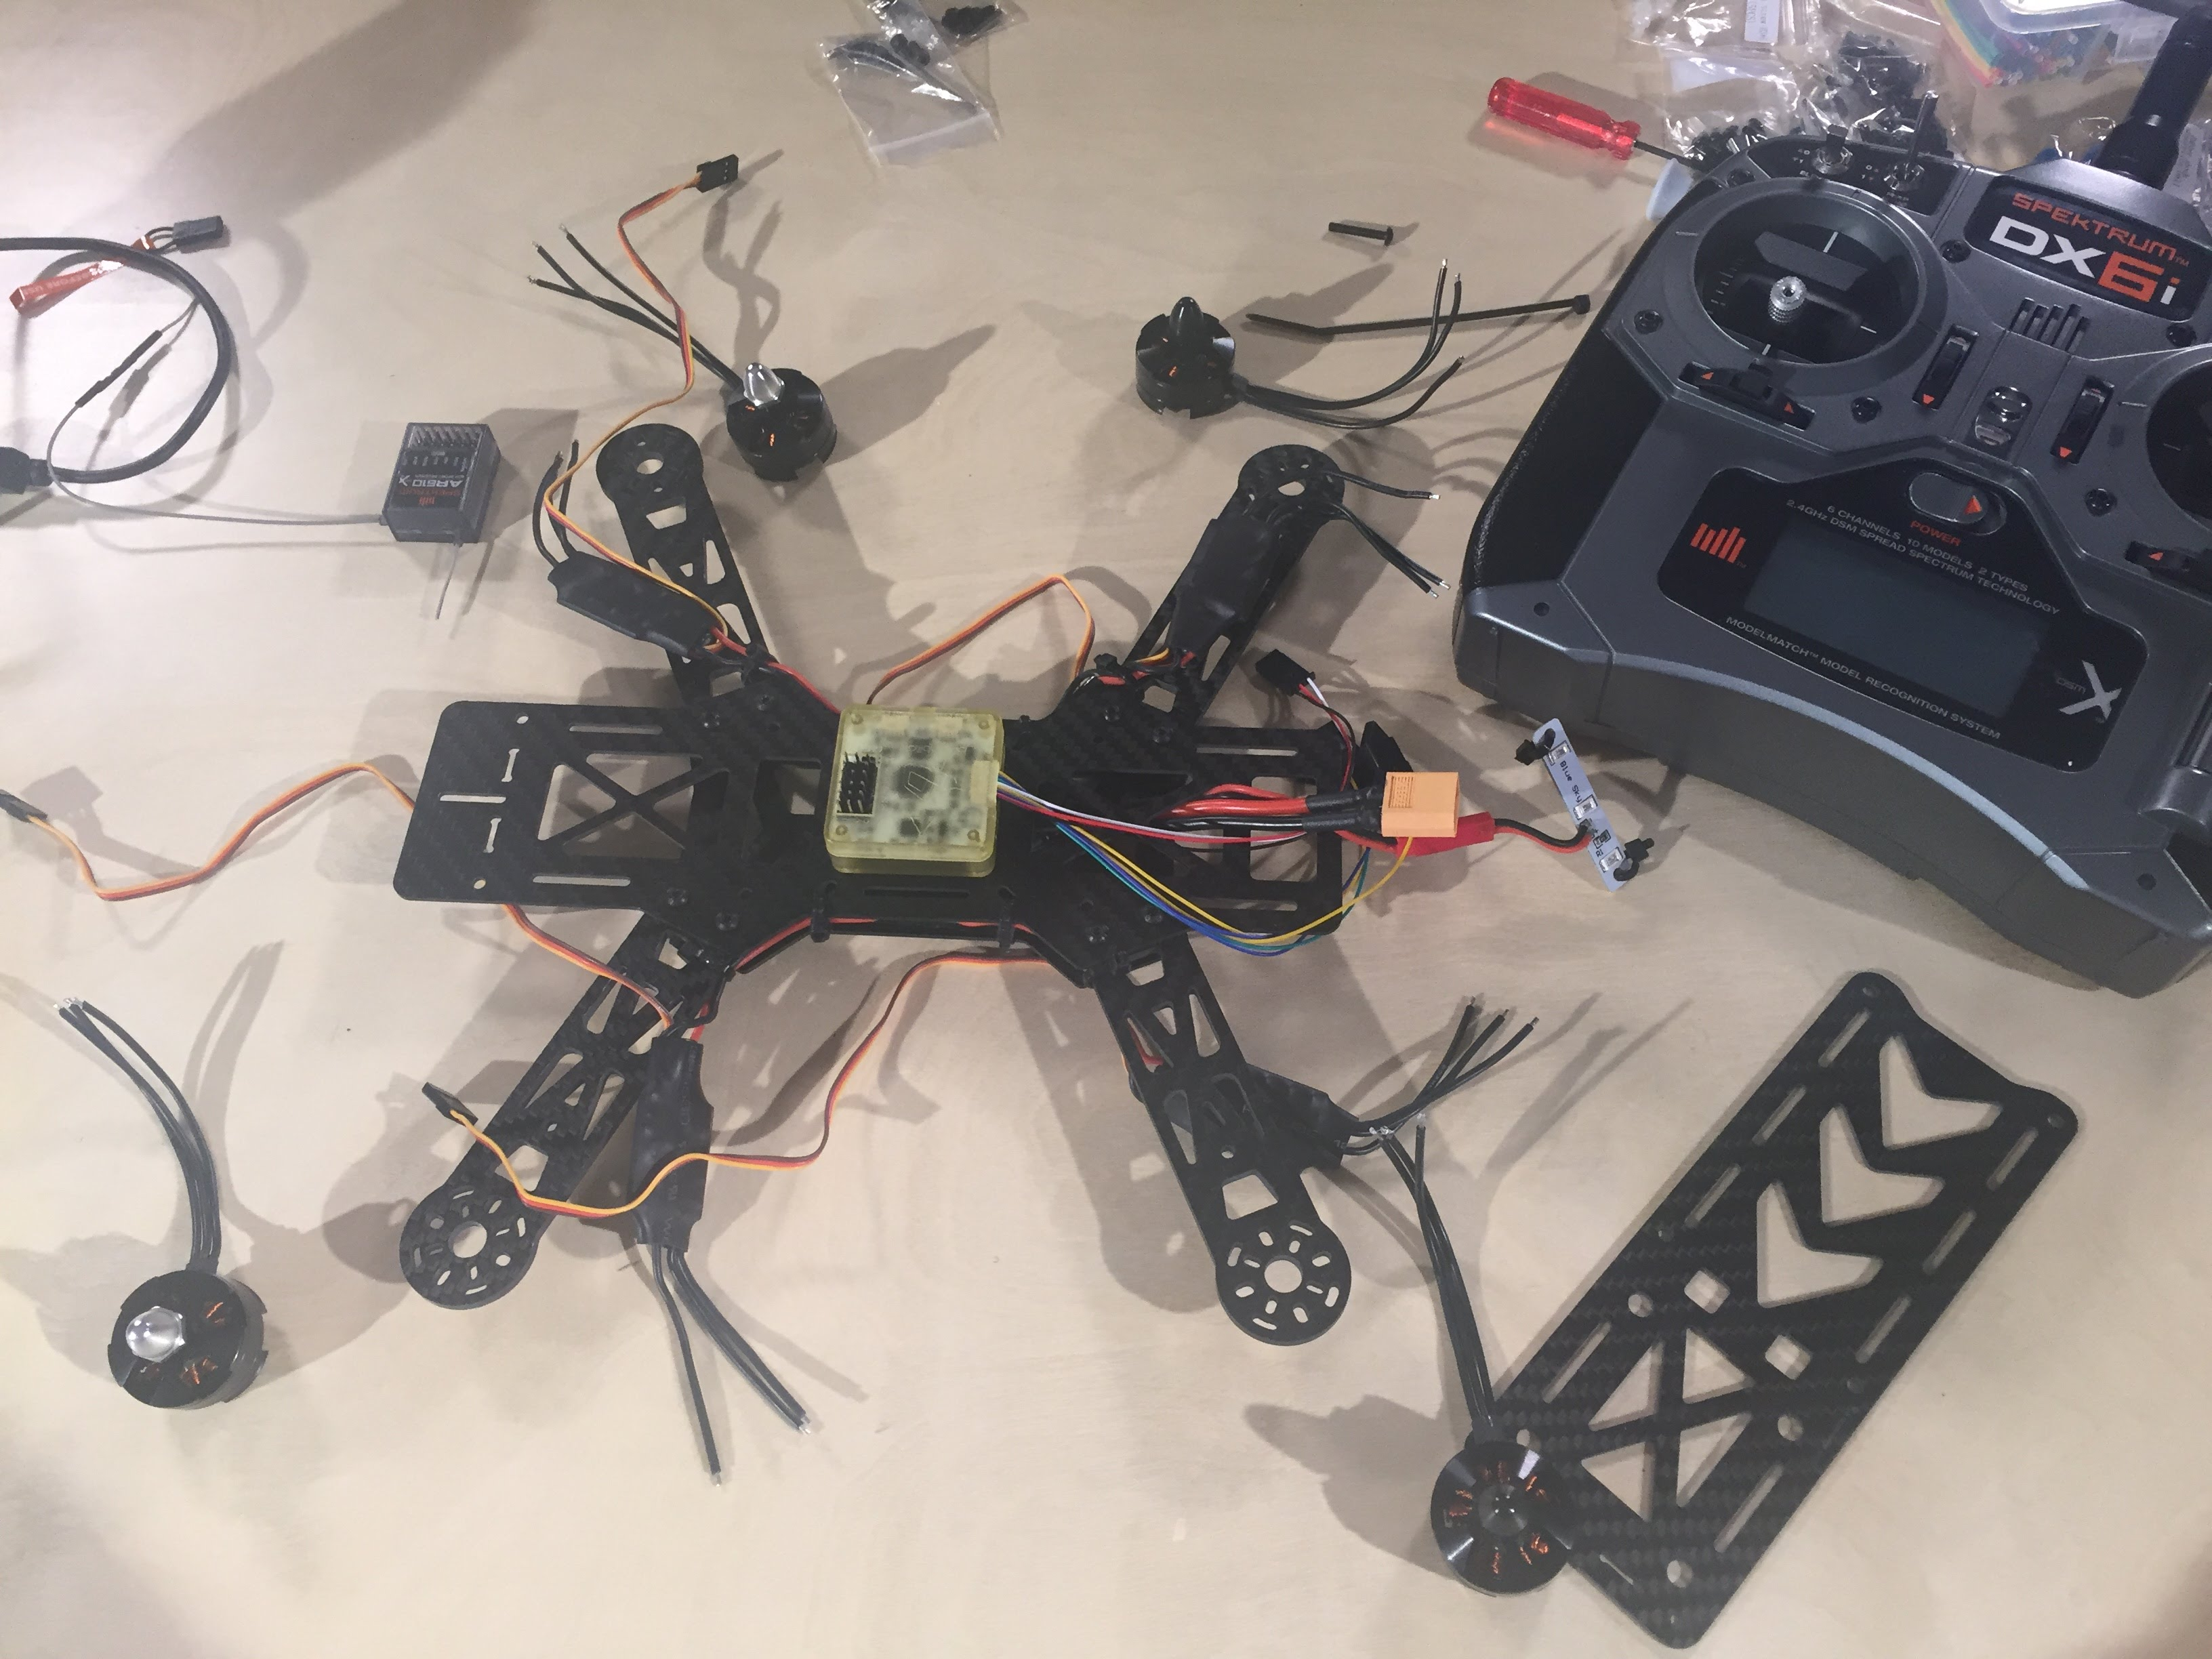 How To Build A FPV Racing Quadcopter Part 2 – The Build